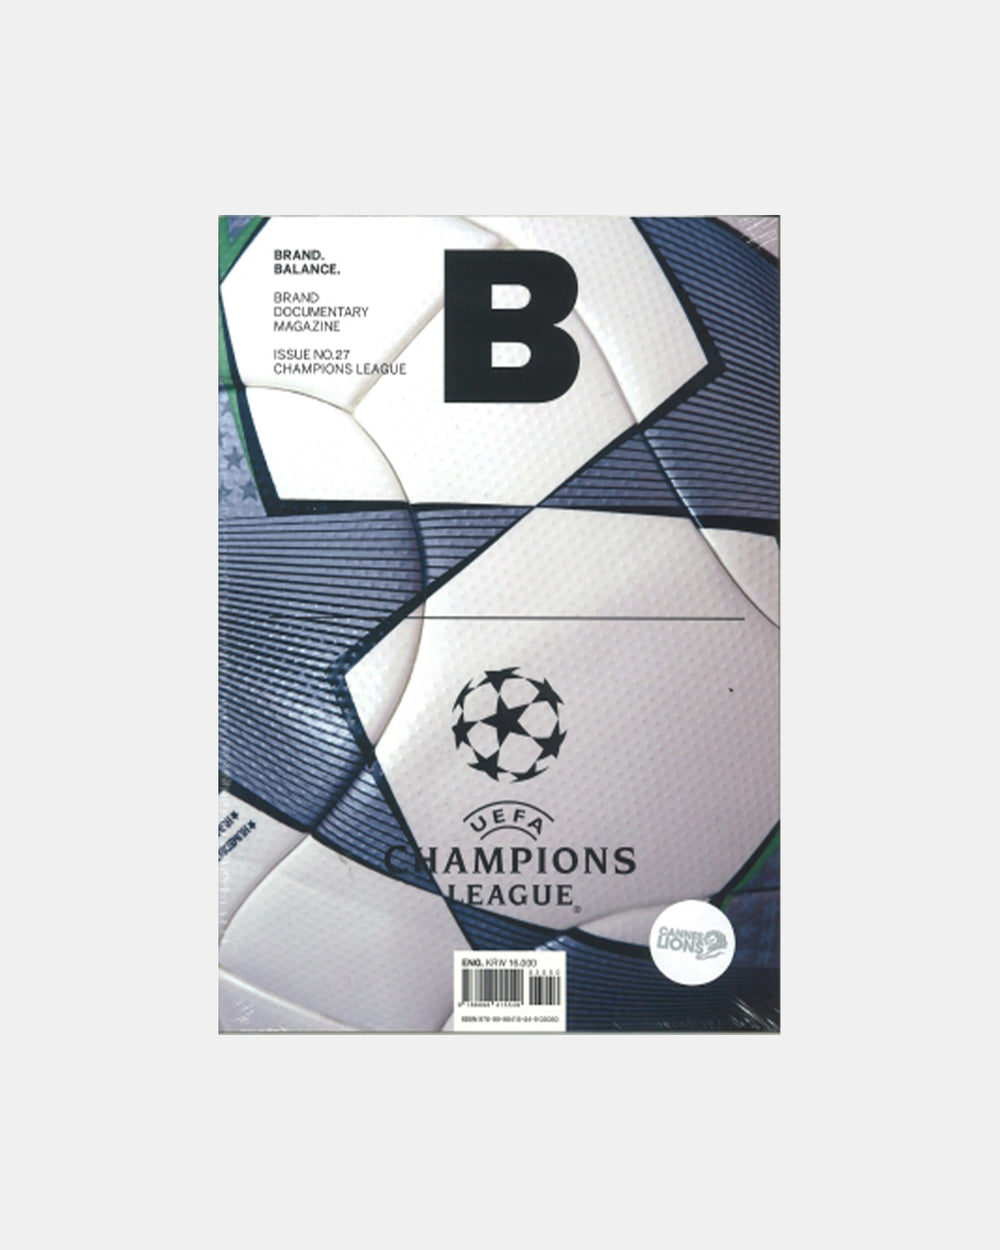 New Distribution House - B Magazine Issue #27 (Champions League)